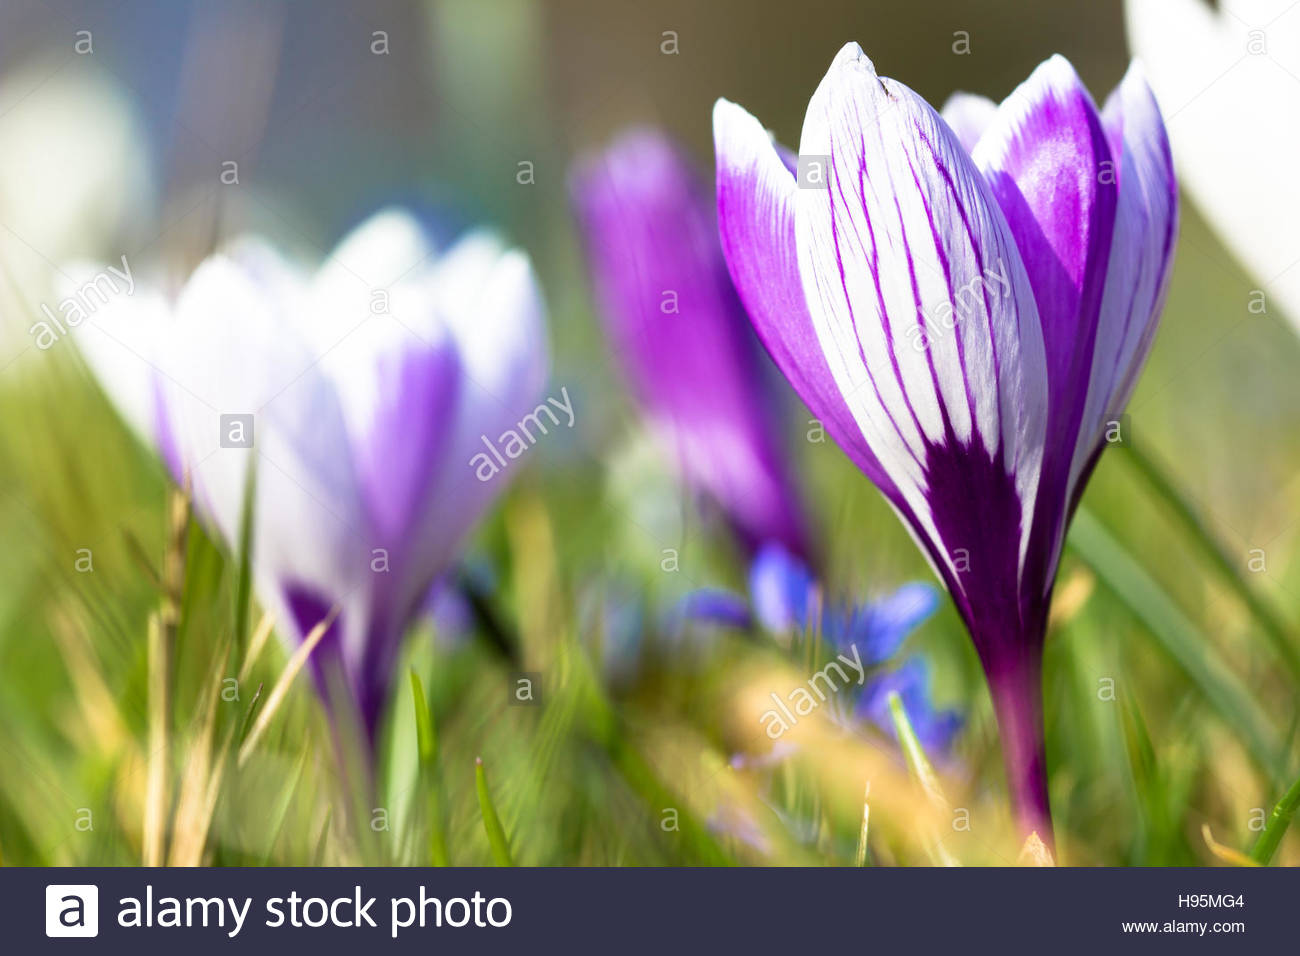 crocus meadow in spring naturalistic garden purple and white